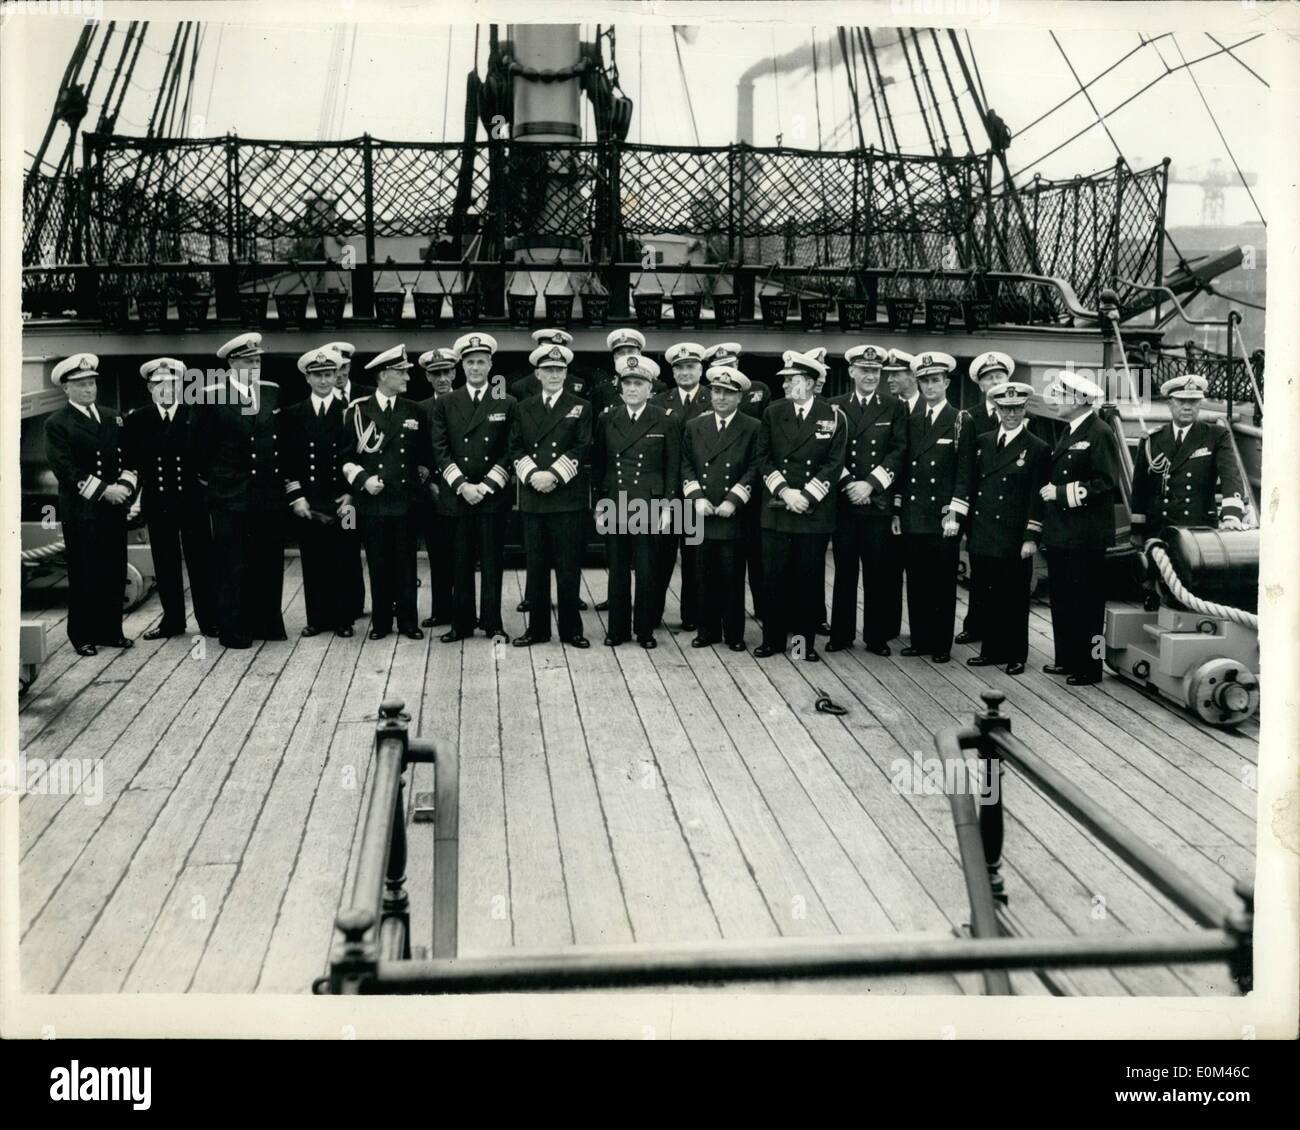 Jun. 06, 1953 - Fleet Review Guests Visit H.M.S Victory At Portsmouth. Officers Aboard H.M.S. Victory.. Officers form the visiting warships now assembled off Portsmouth for next week's Fleet Review by H.M. The Queen - were invited aboard H.M.S. Victory for lunch this afternoon.. Keystone Photo Shows:- Group of visiting officers aboard the Victory today.. They are L-R: Rear Admiral G.W.G. Simpson, Flag Officer Subs; Captain O.I. Rudakov of Russia; Commander C.O. Herlofsen (Norway); Captain G.G.A.B. de Mark (Sweden); Vice Admiral J.Wright (USA); Admiral Sir John Edelsten (C. in C - Stock Image